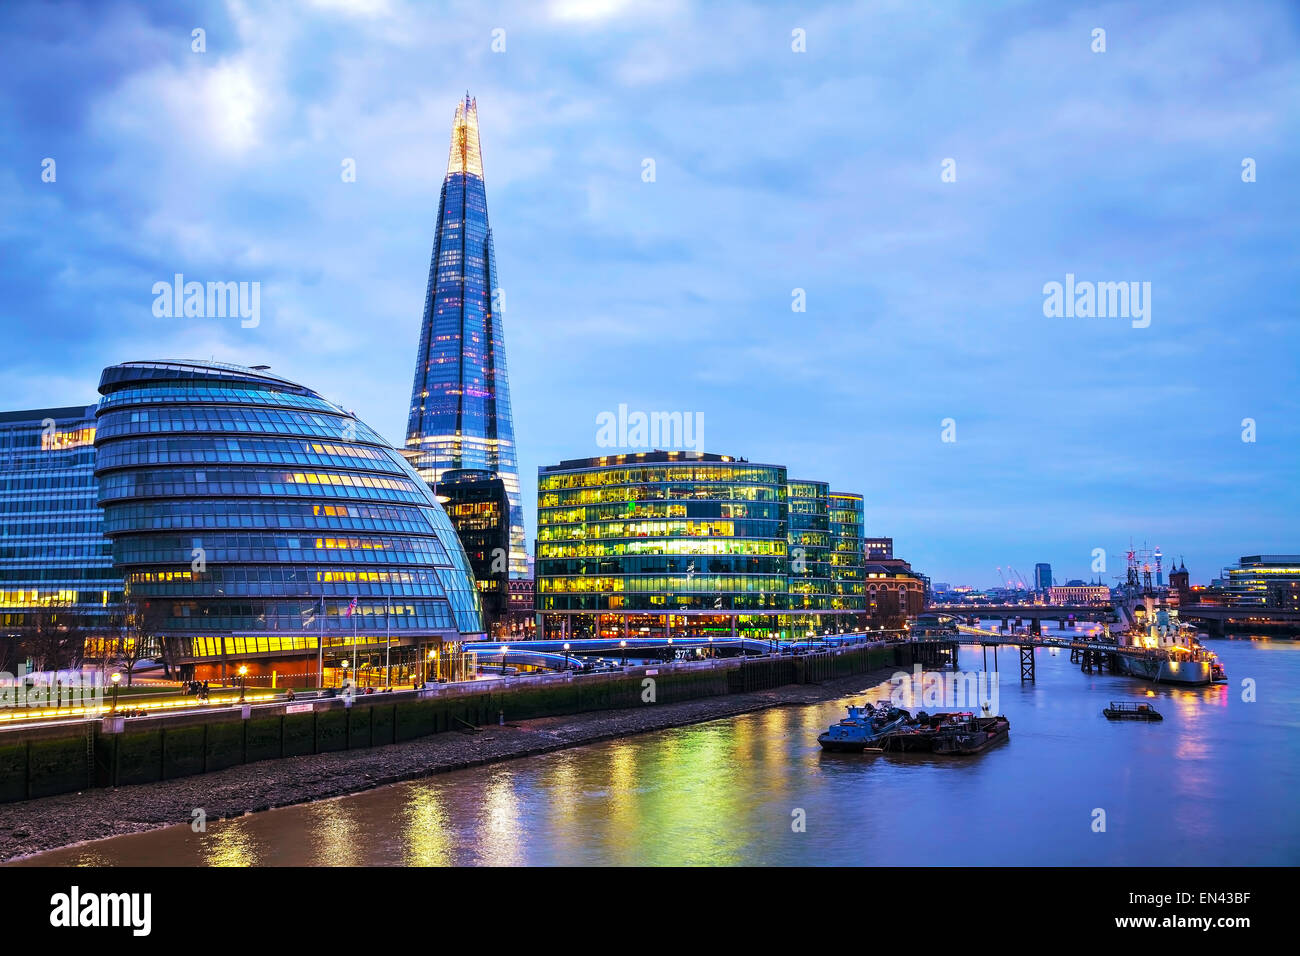 LONDON - APRIL 4: Overview of London with the Shard of Glass on April 4, 2015 in London, UK. Standing 306 metres - Stock Image